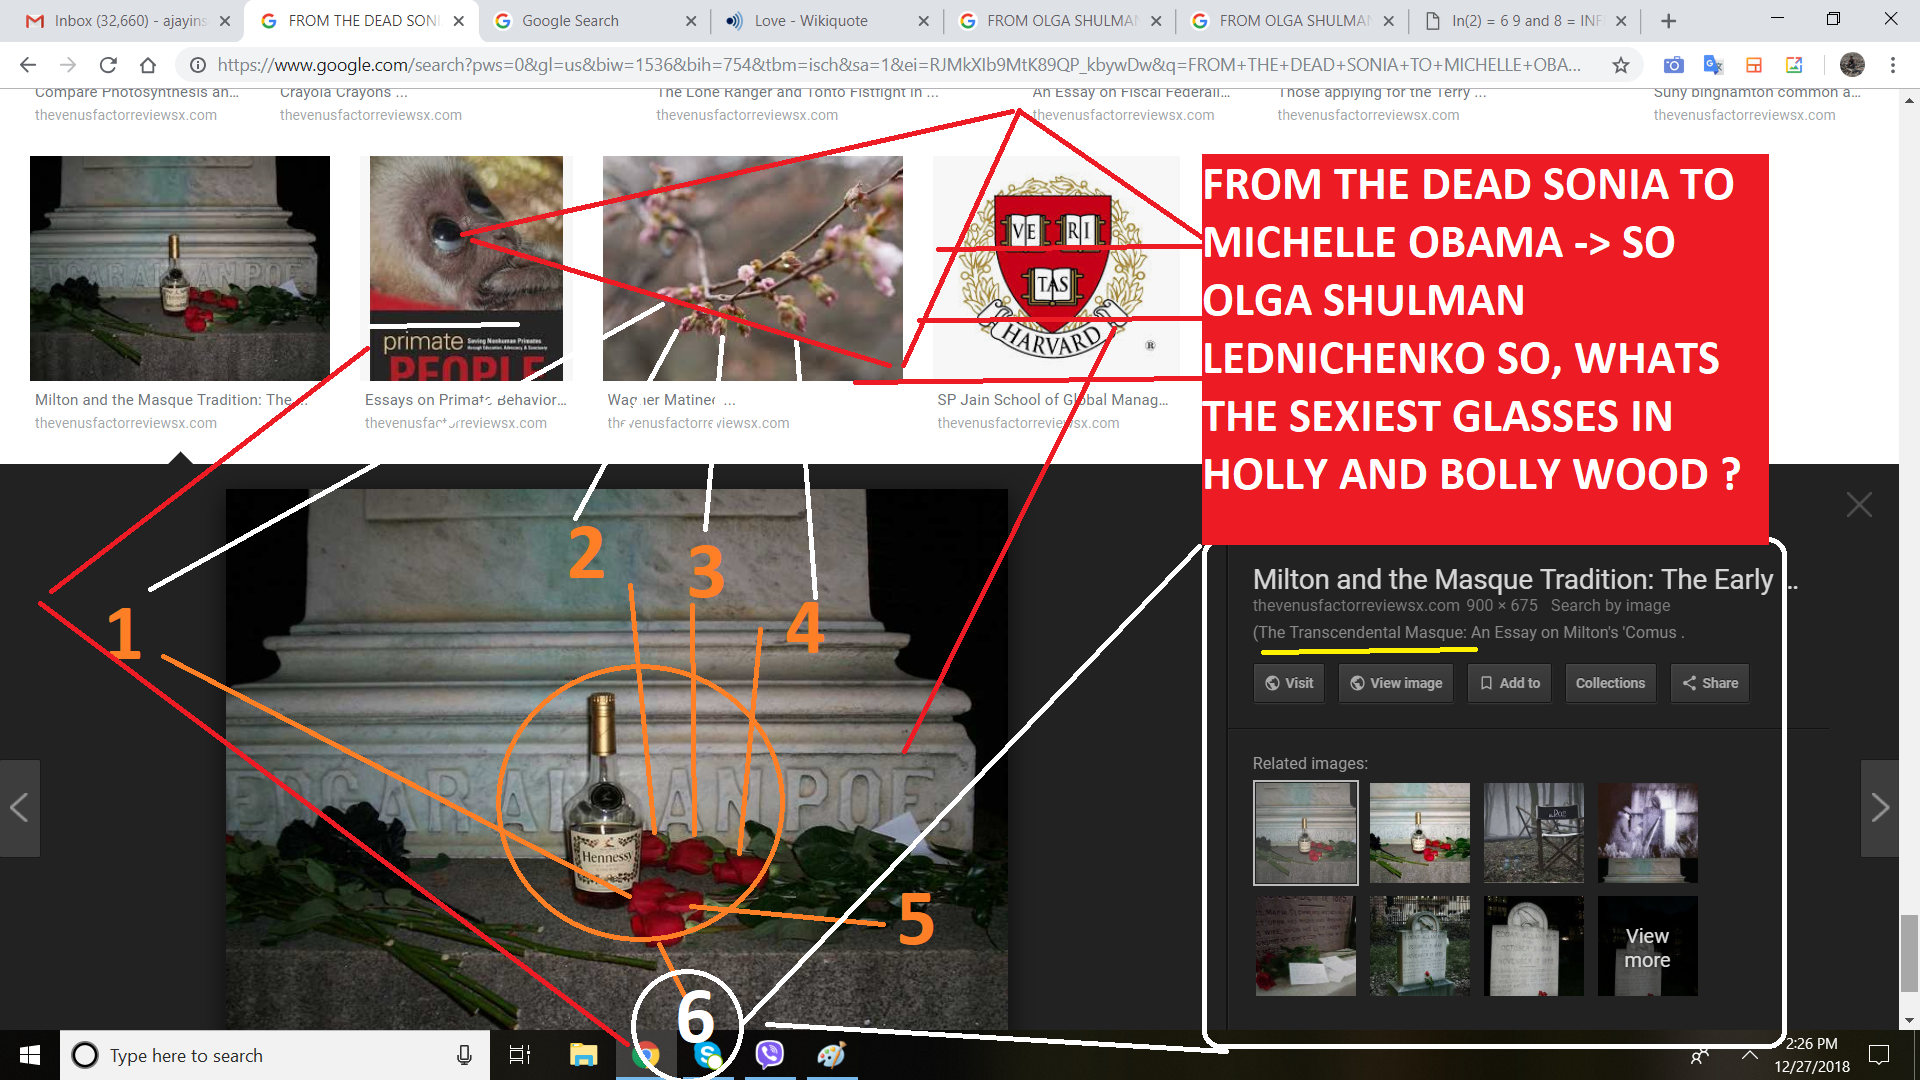 FROM THE DEAD SONIA TO MICHELLE OBAMA SO OLGA SHULMAN LEDNICHENKO SO, WHATS THE SEIXT GLASSES IN HOLLY AND BOLLY WOOD